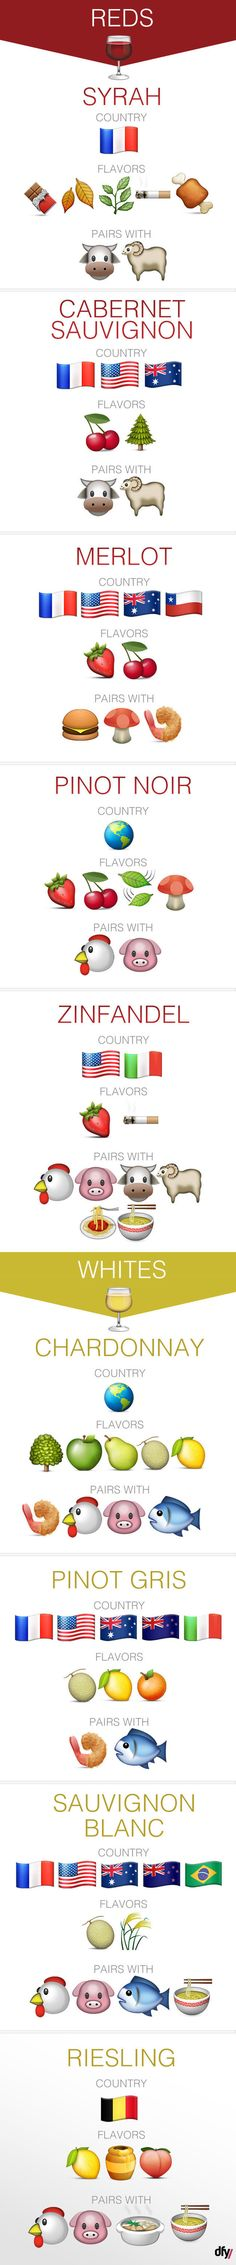 You need this emoji wine guide in your life